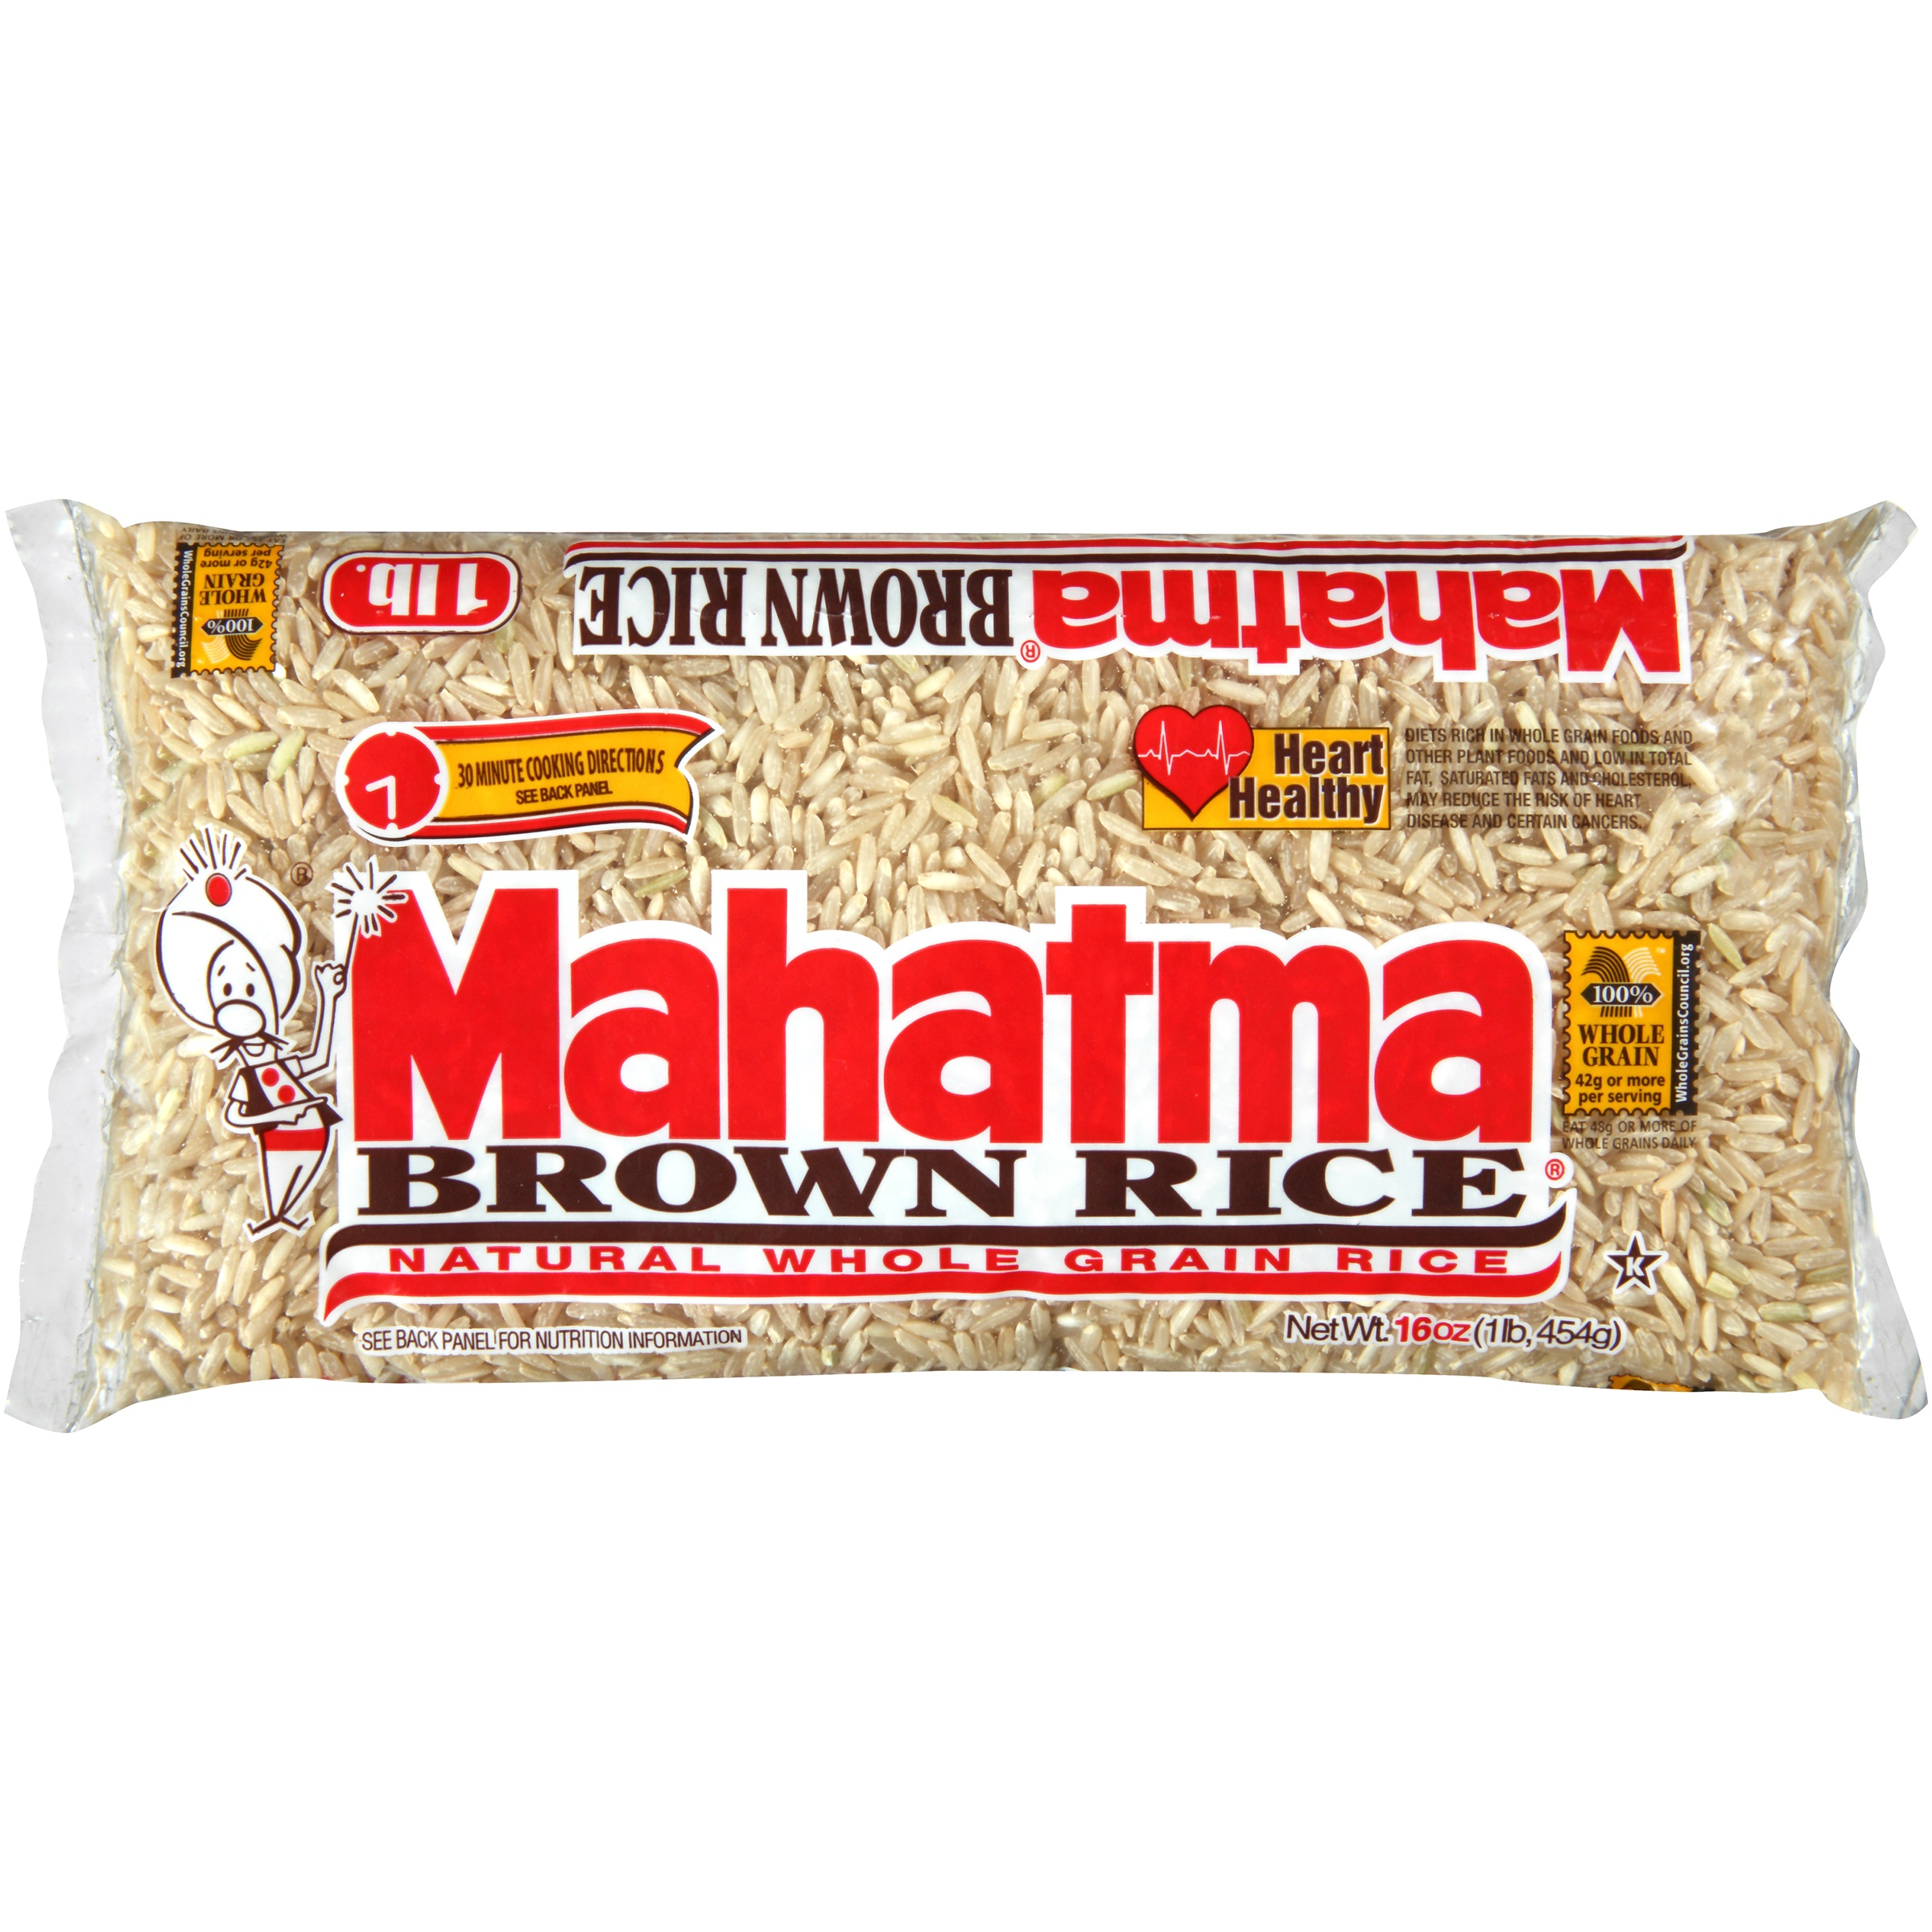 Mahatma® Brown Natural Whole Grain Rice 16 oz. Bag